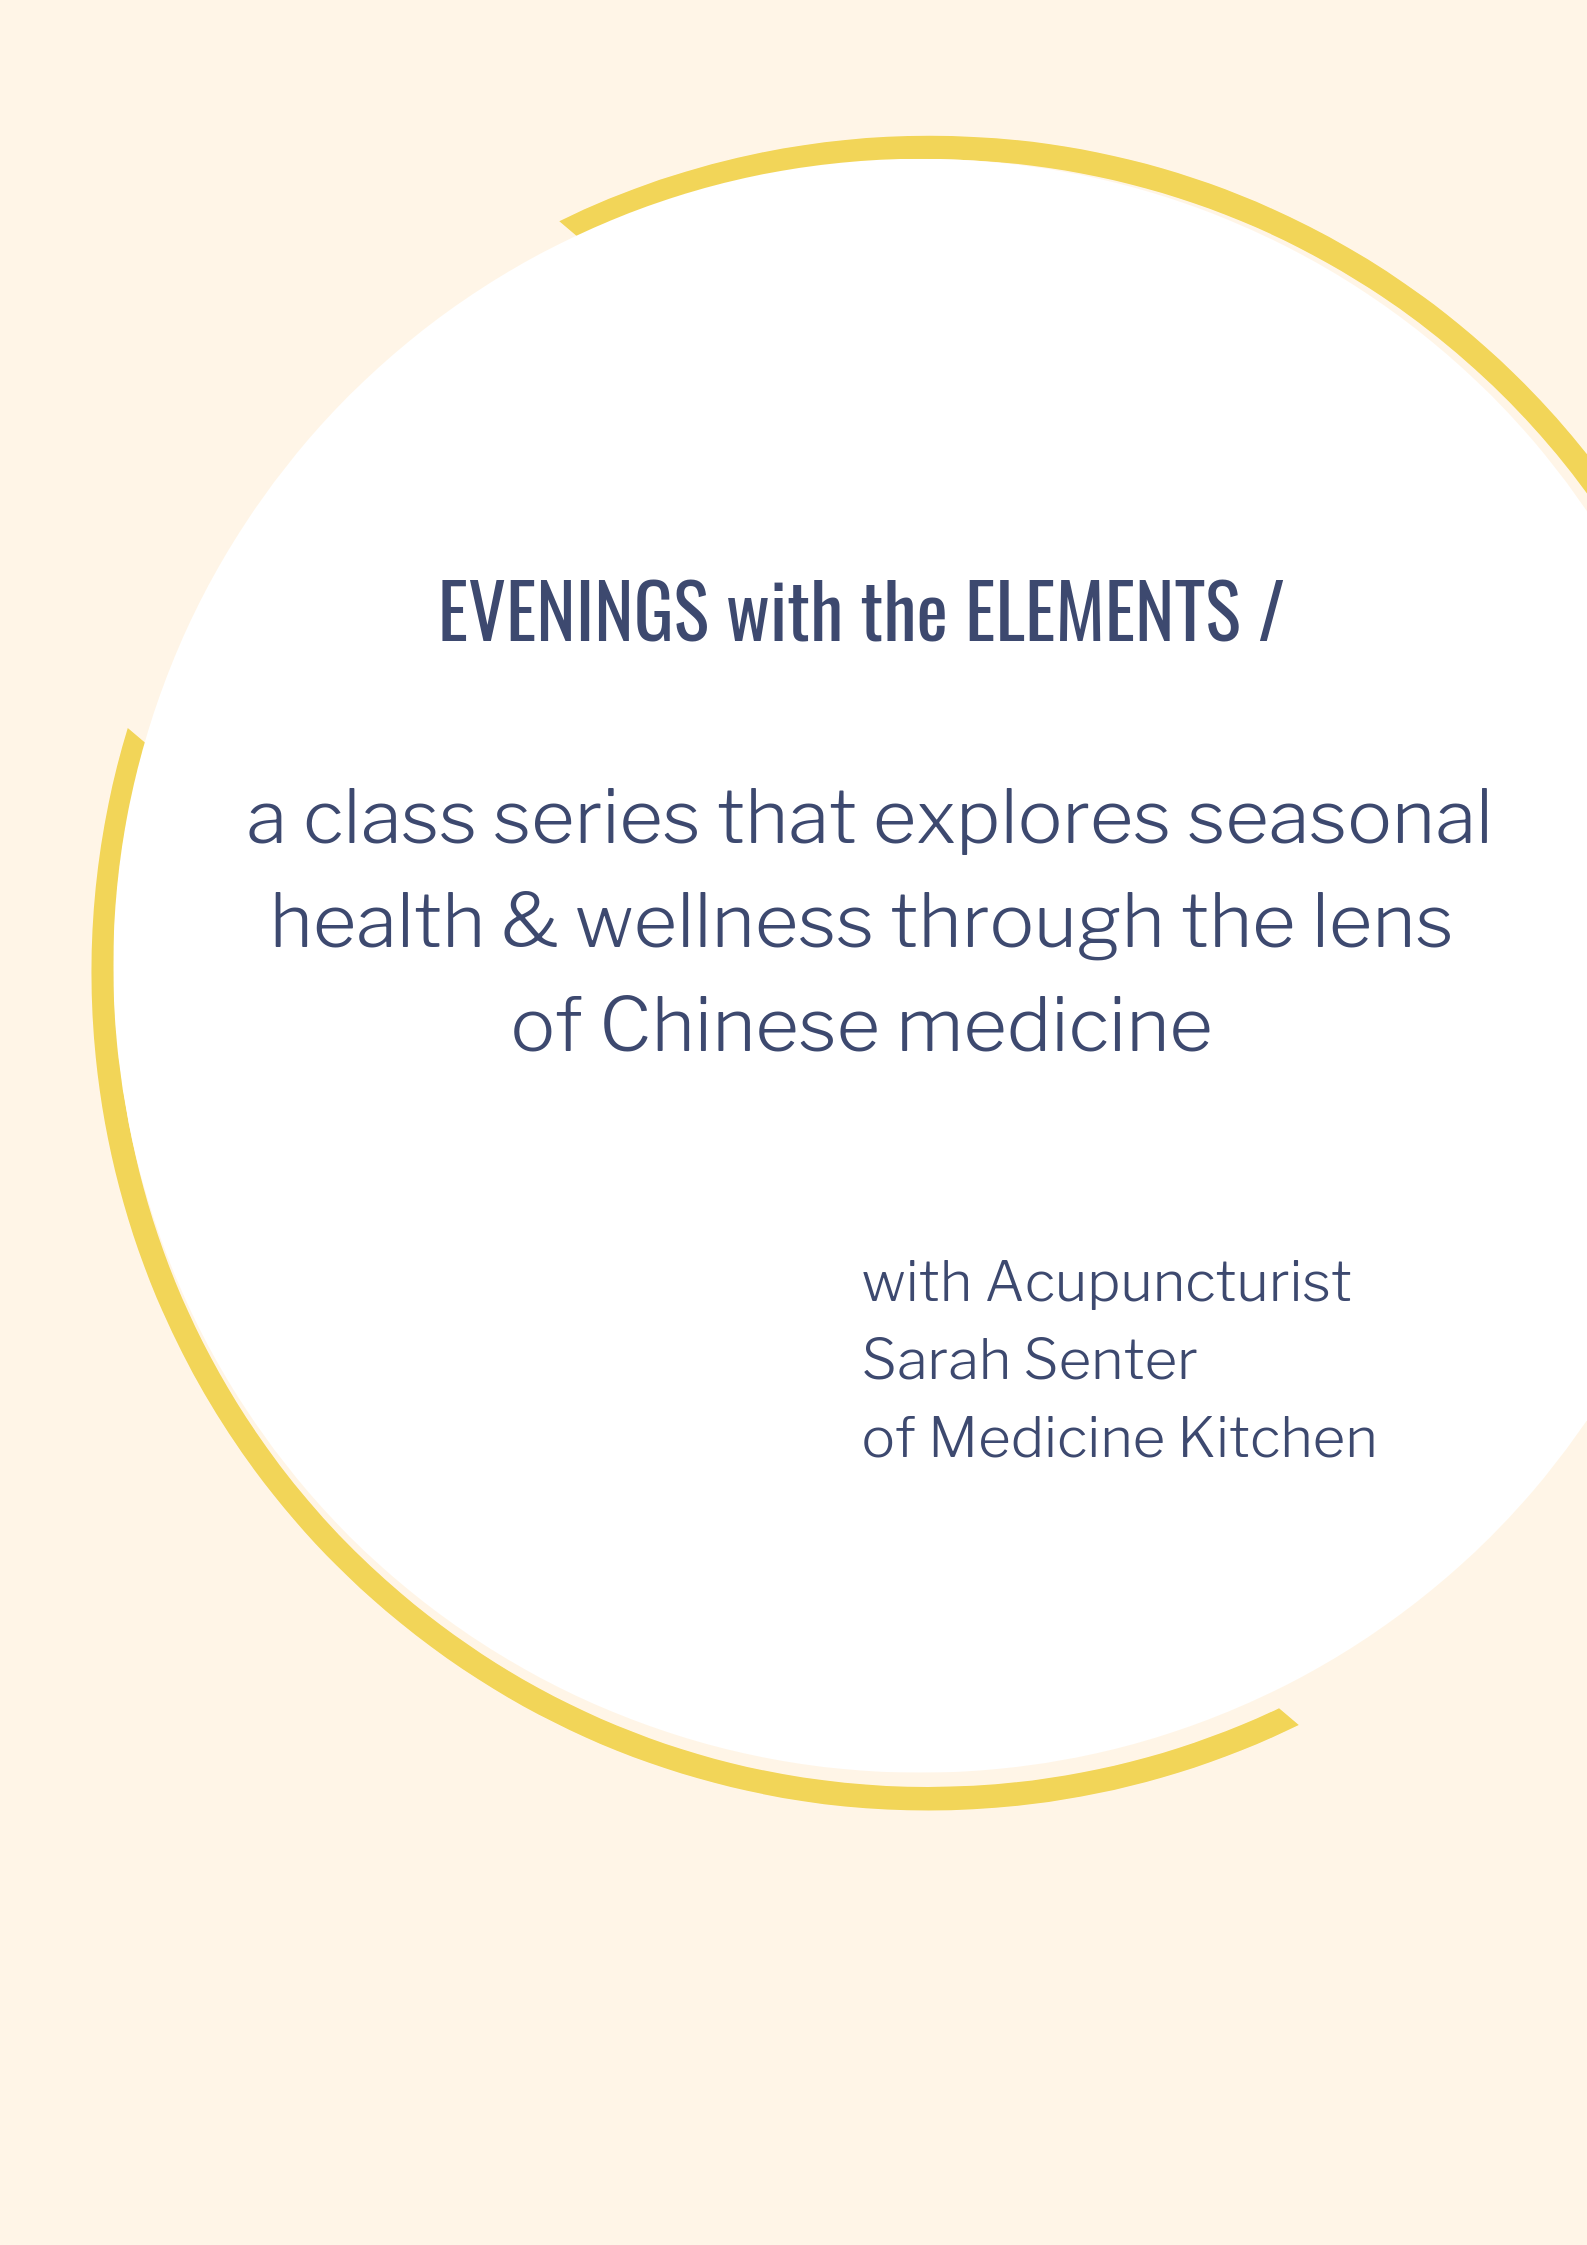 I'm so excited to launch this class series I've been working on called  Evenings with the Elements . The first class will be held November 6th, 2019 at 6:30PM at The Commune, a truly beautiful event space. Tickets are available  HERE . I'll be sharing on the topic of healing foods for fall wellness - focusing on immunity and respiratory health which is connected to the season. We will also learn some relevant breath work, herbal remedies, and acupressure that will help you through this fall. Andrea Cortez from  Mind Body Music  will be joining us with her harp as I lead you through a gentle meditation to align with the season. I can't wait - come join me!